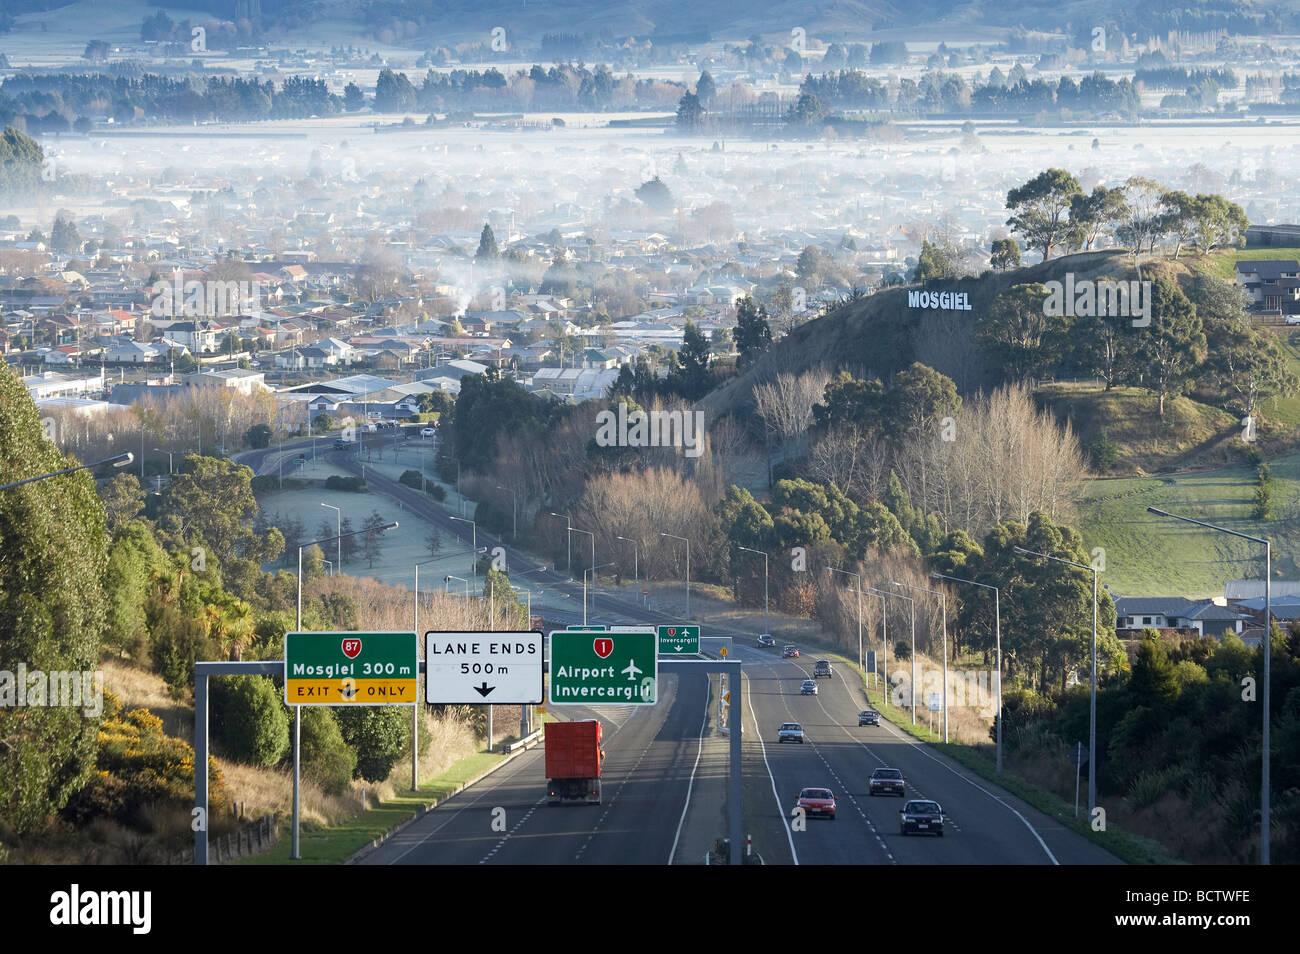 air pollution in new zealand In most new zealand towns and cities home heating using wood and coal burners is the main cause of air pollution, especially during winter but in auckland, vehicle emissions are an equal contributor to poor air quality.